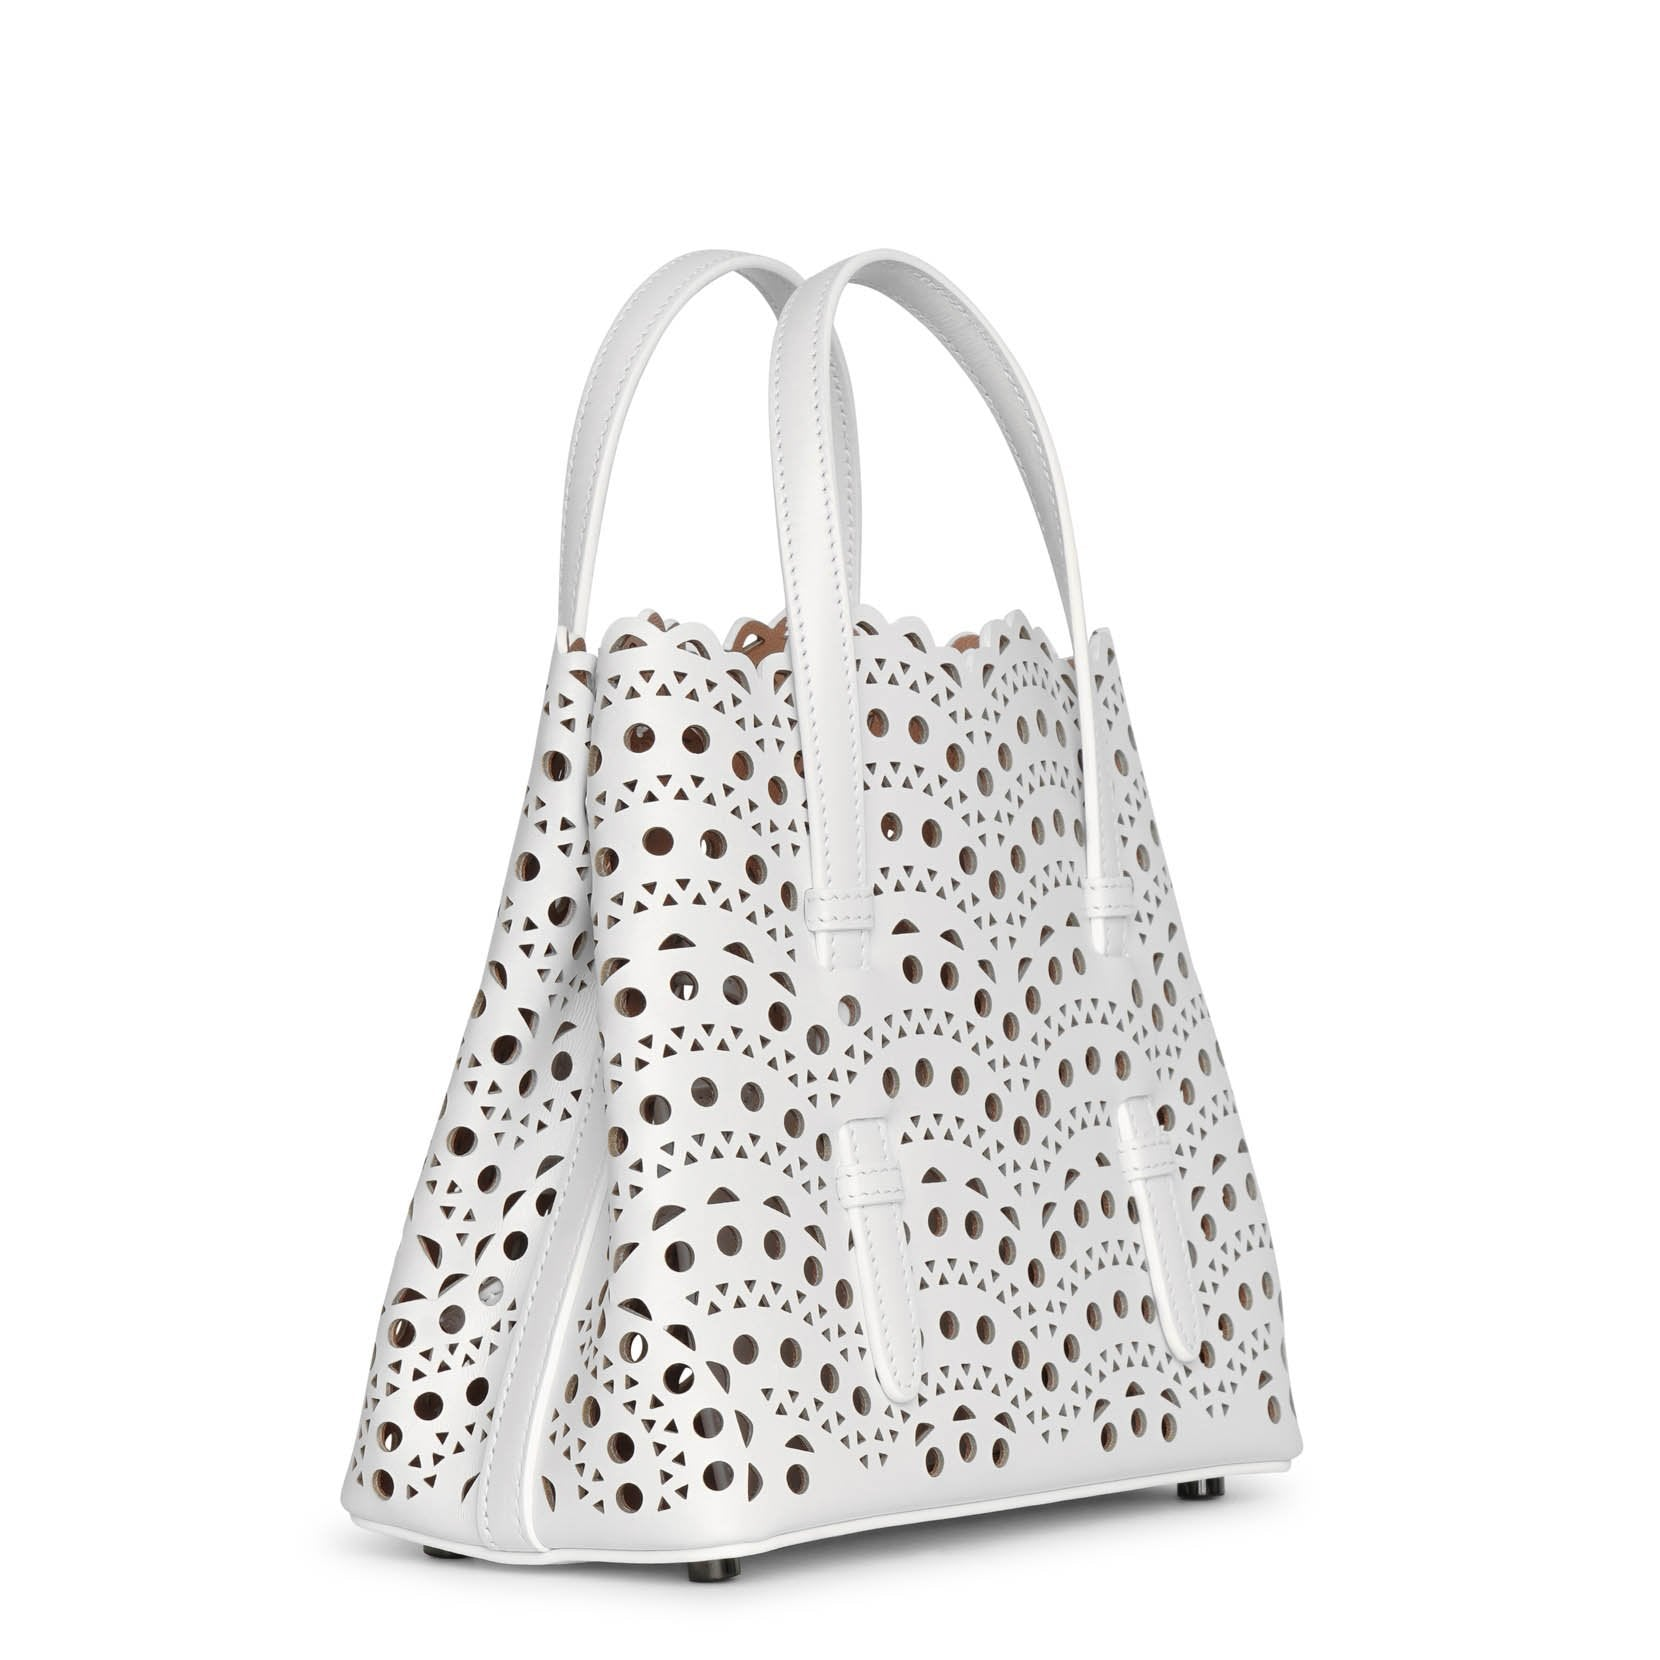 ALAÏA Leathers Mina 20 white leather tote bag